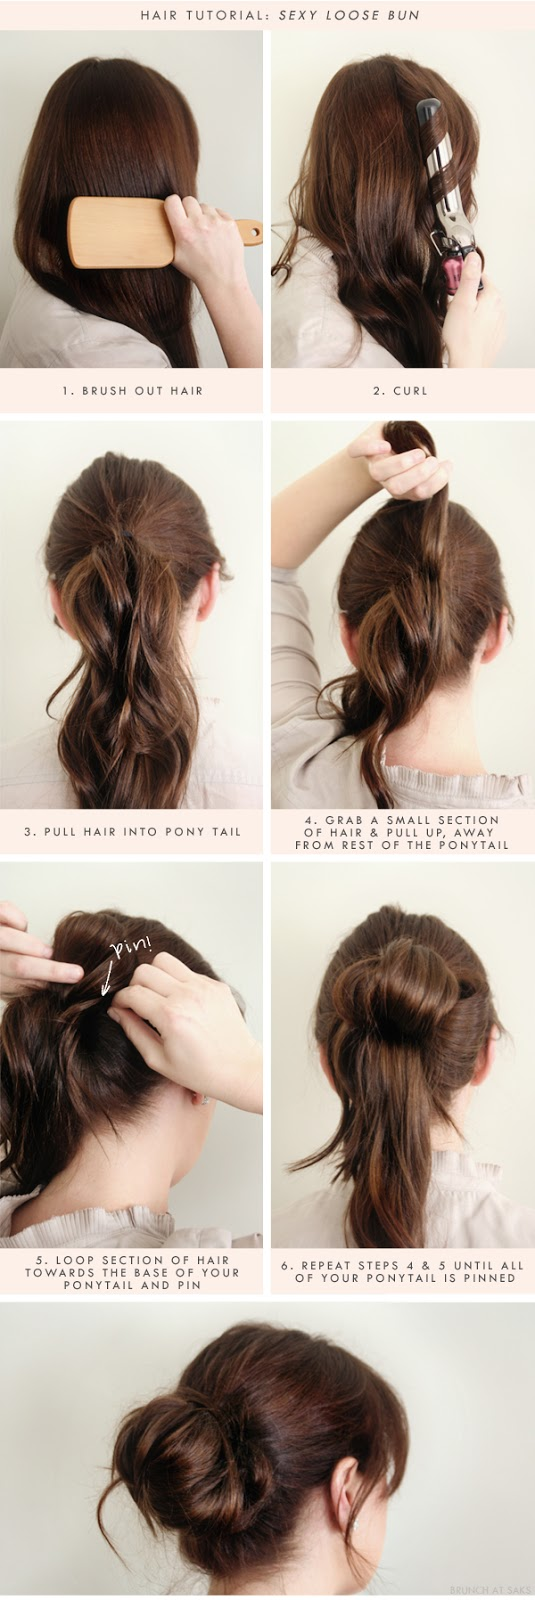 Astounding Top 25 Messy Hair Bun Tutorials Perfect For Those Lazy Mornings Hairstyle Inspiration Daily Dogsangcom